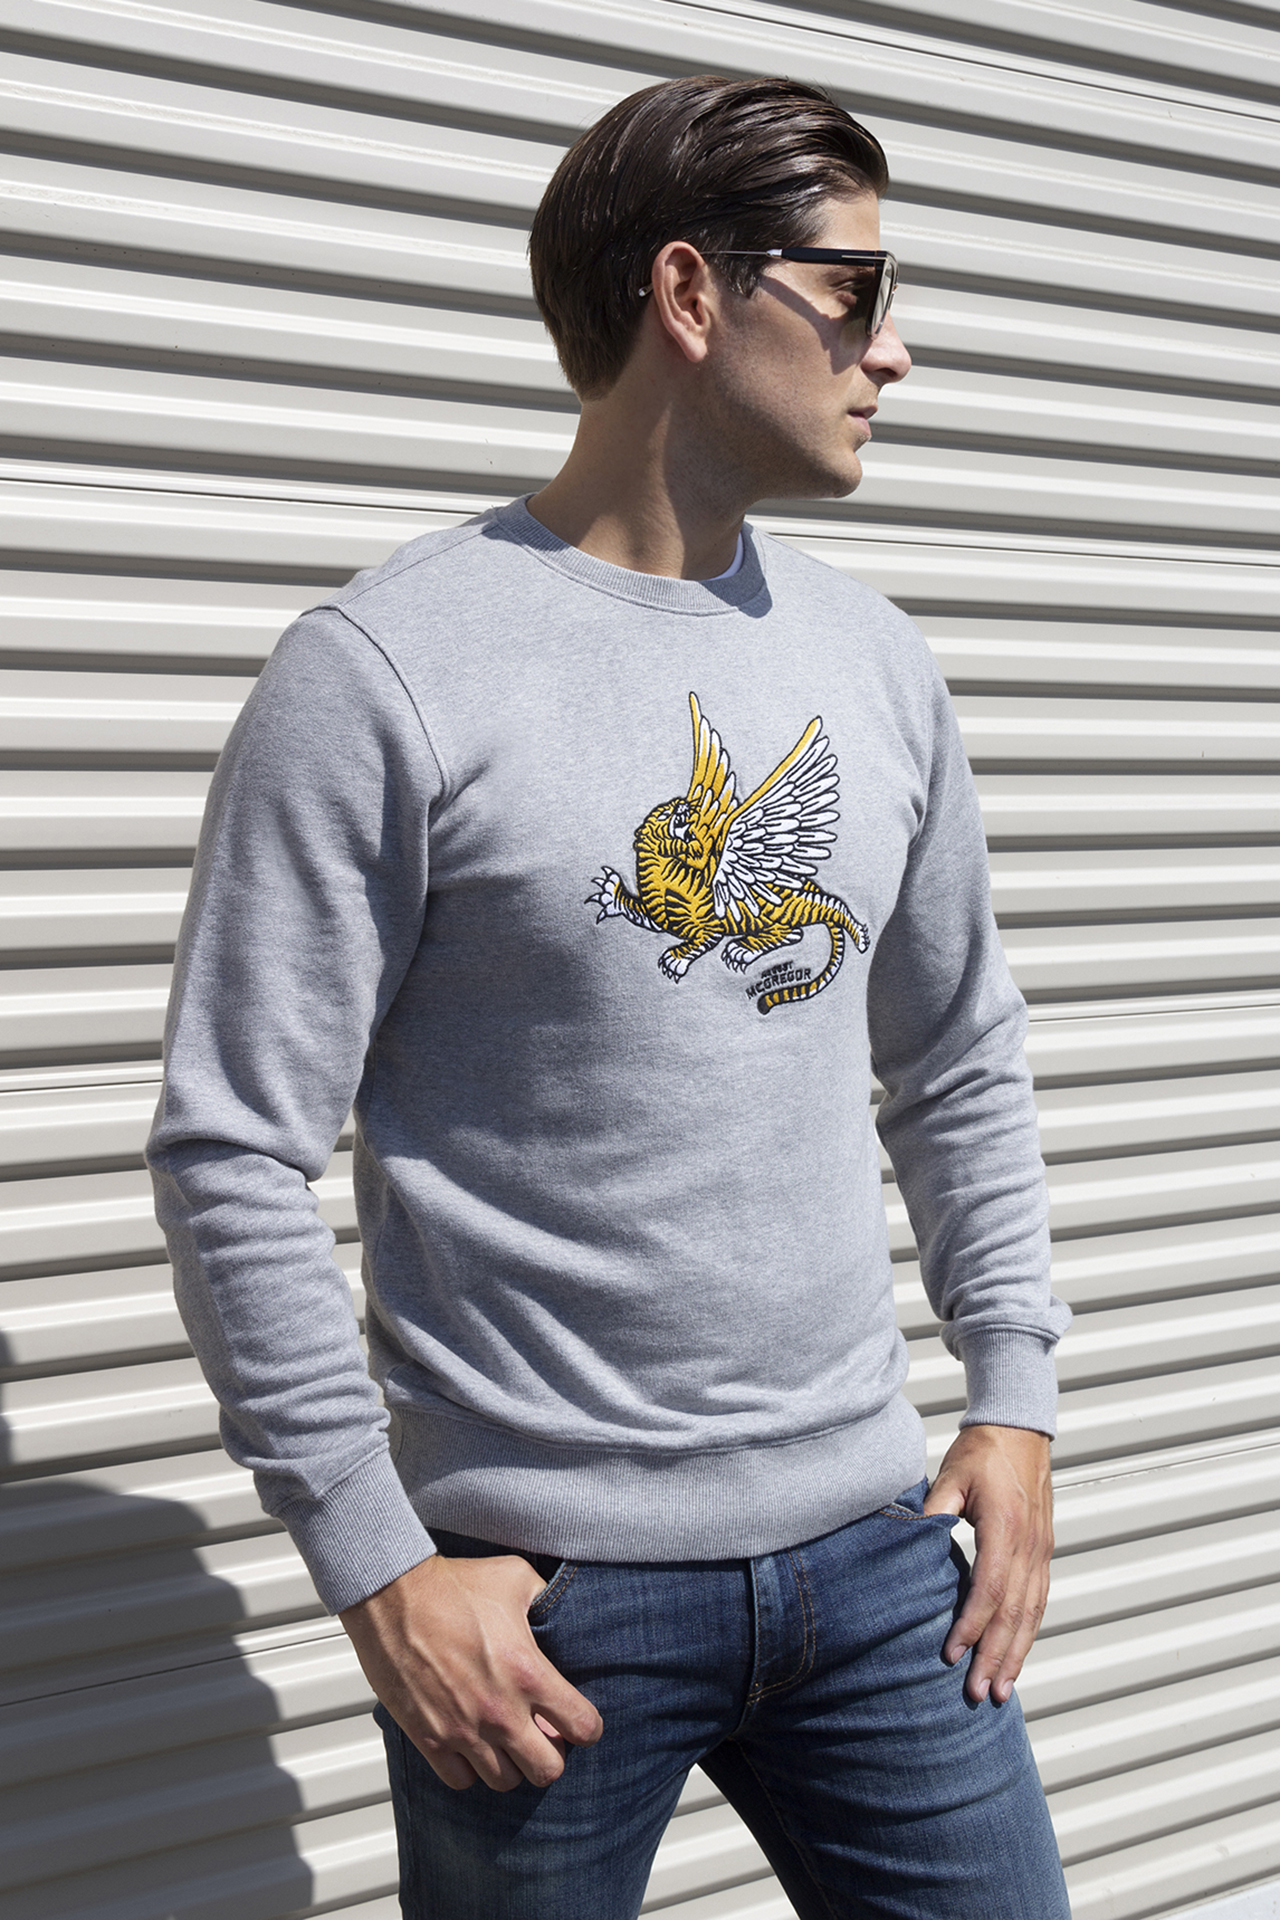 AM X PRPS Crewneck Embroidered Flying Tiger Sweatshirt in Gray